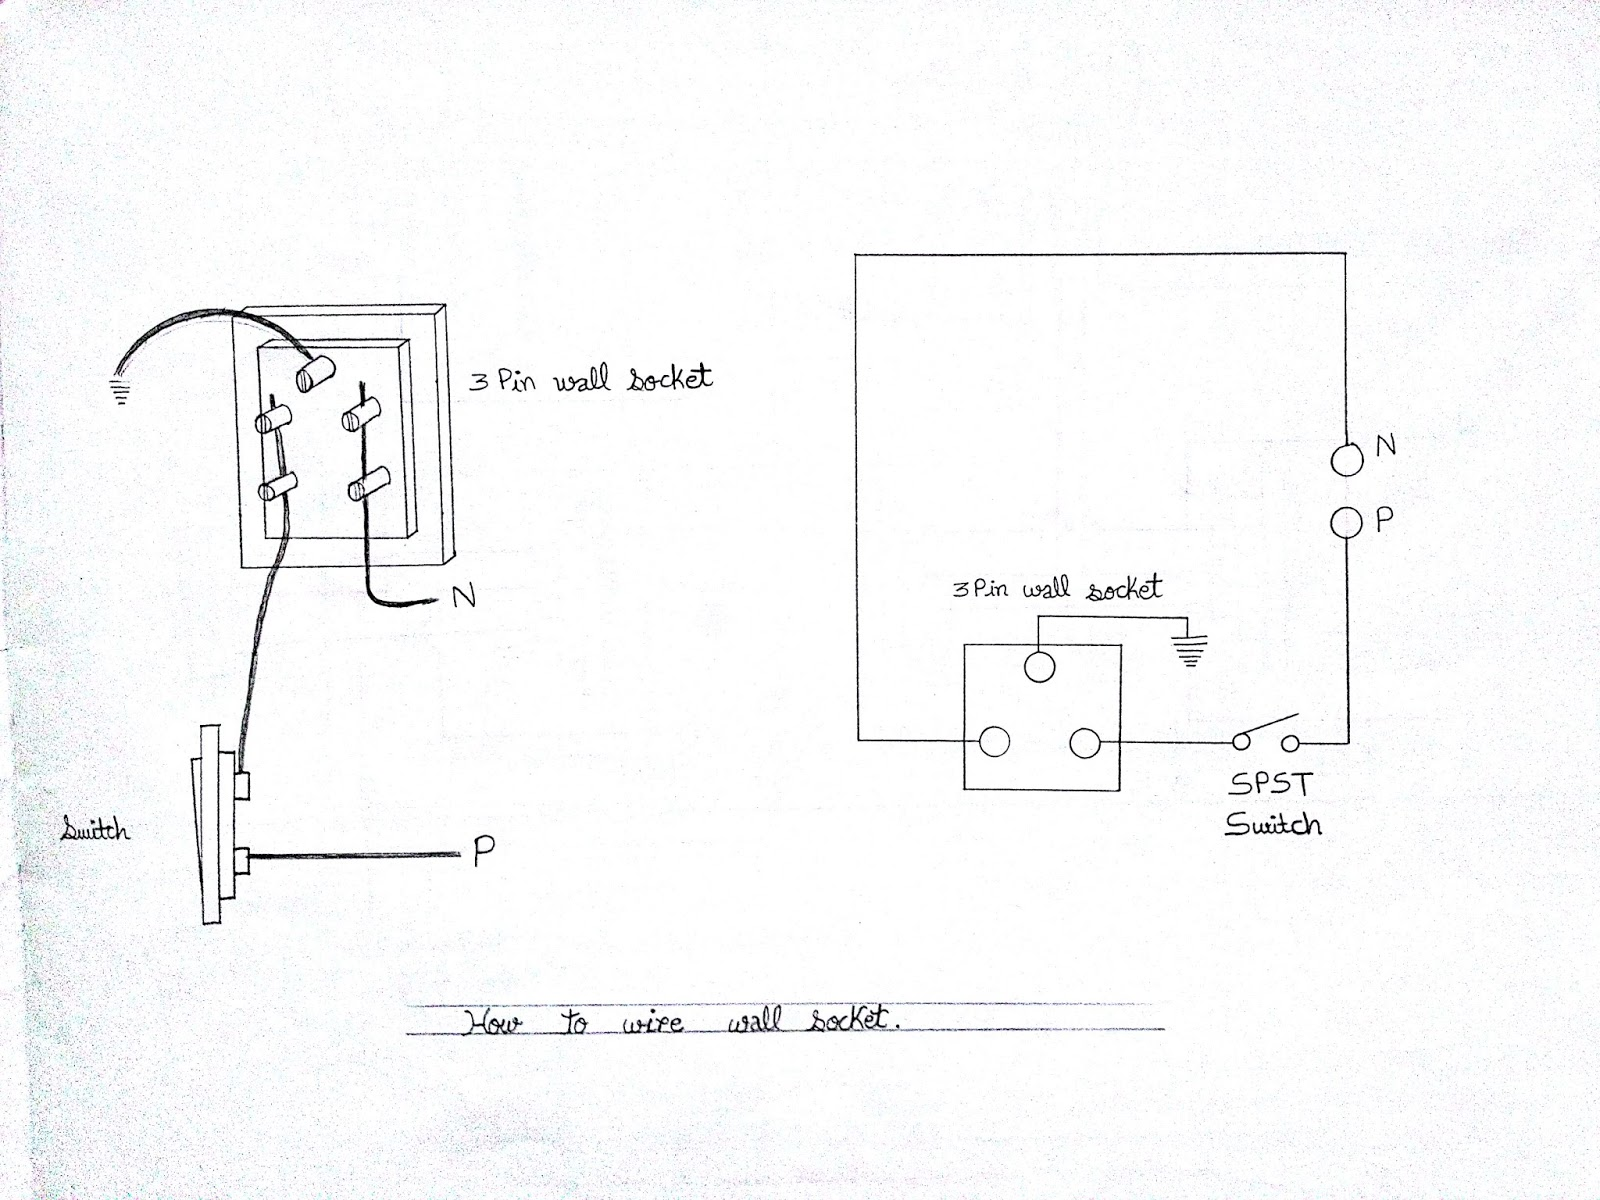 Wiring Diagram For Wall Socket Flex A Lite Dual Fan Controller Learn Electrician Electrical Diagrams Of Switches